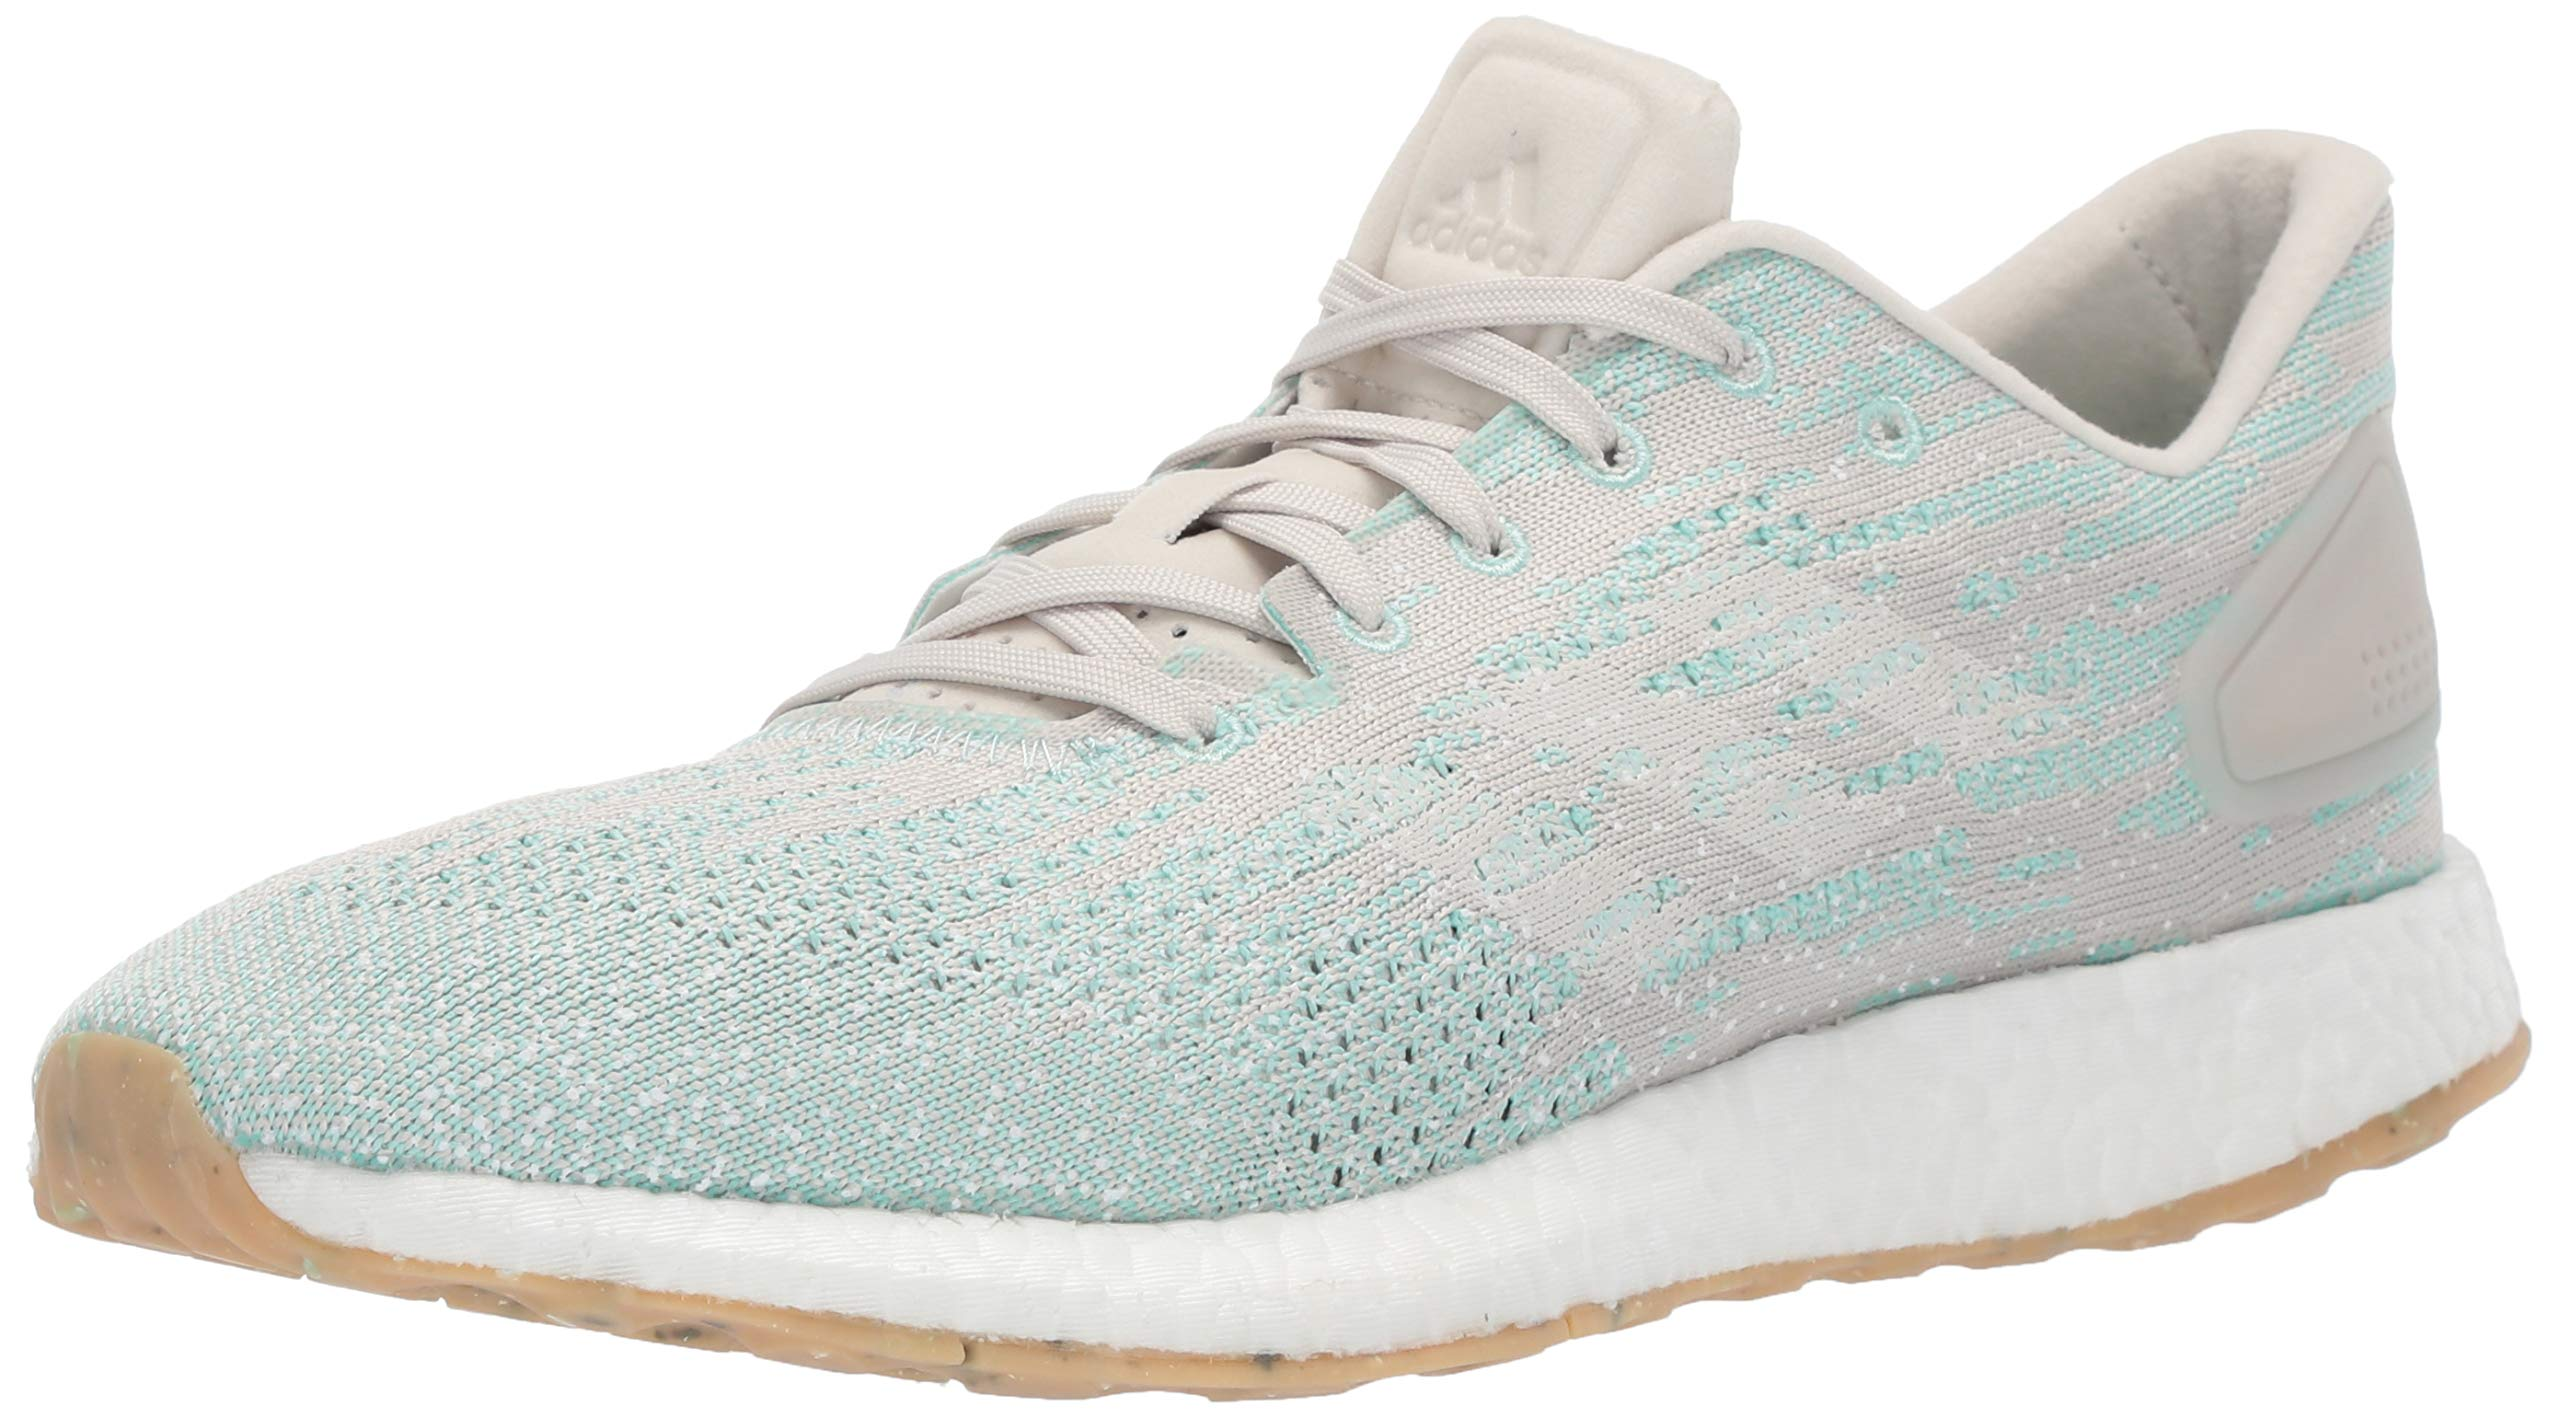 adidas Women's Pureboost DPR Running Shoes, raw White/Clear Mint, 9.5 M US by adidas